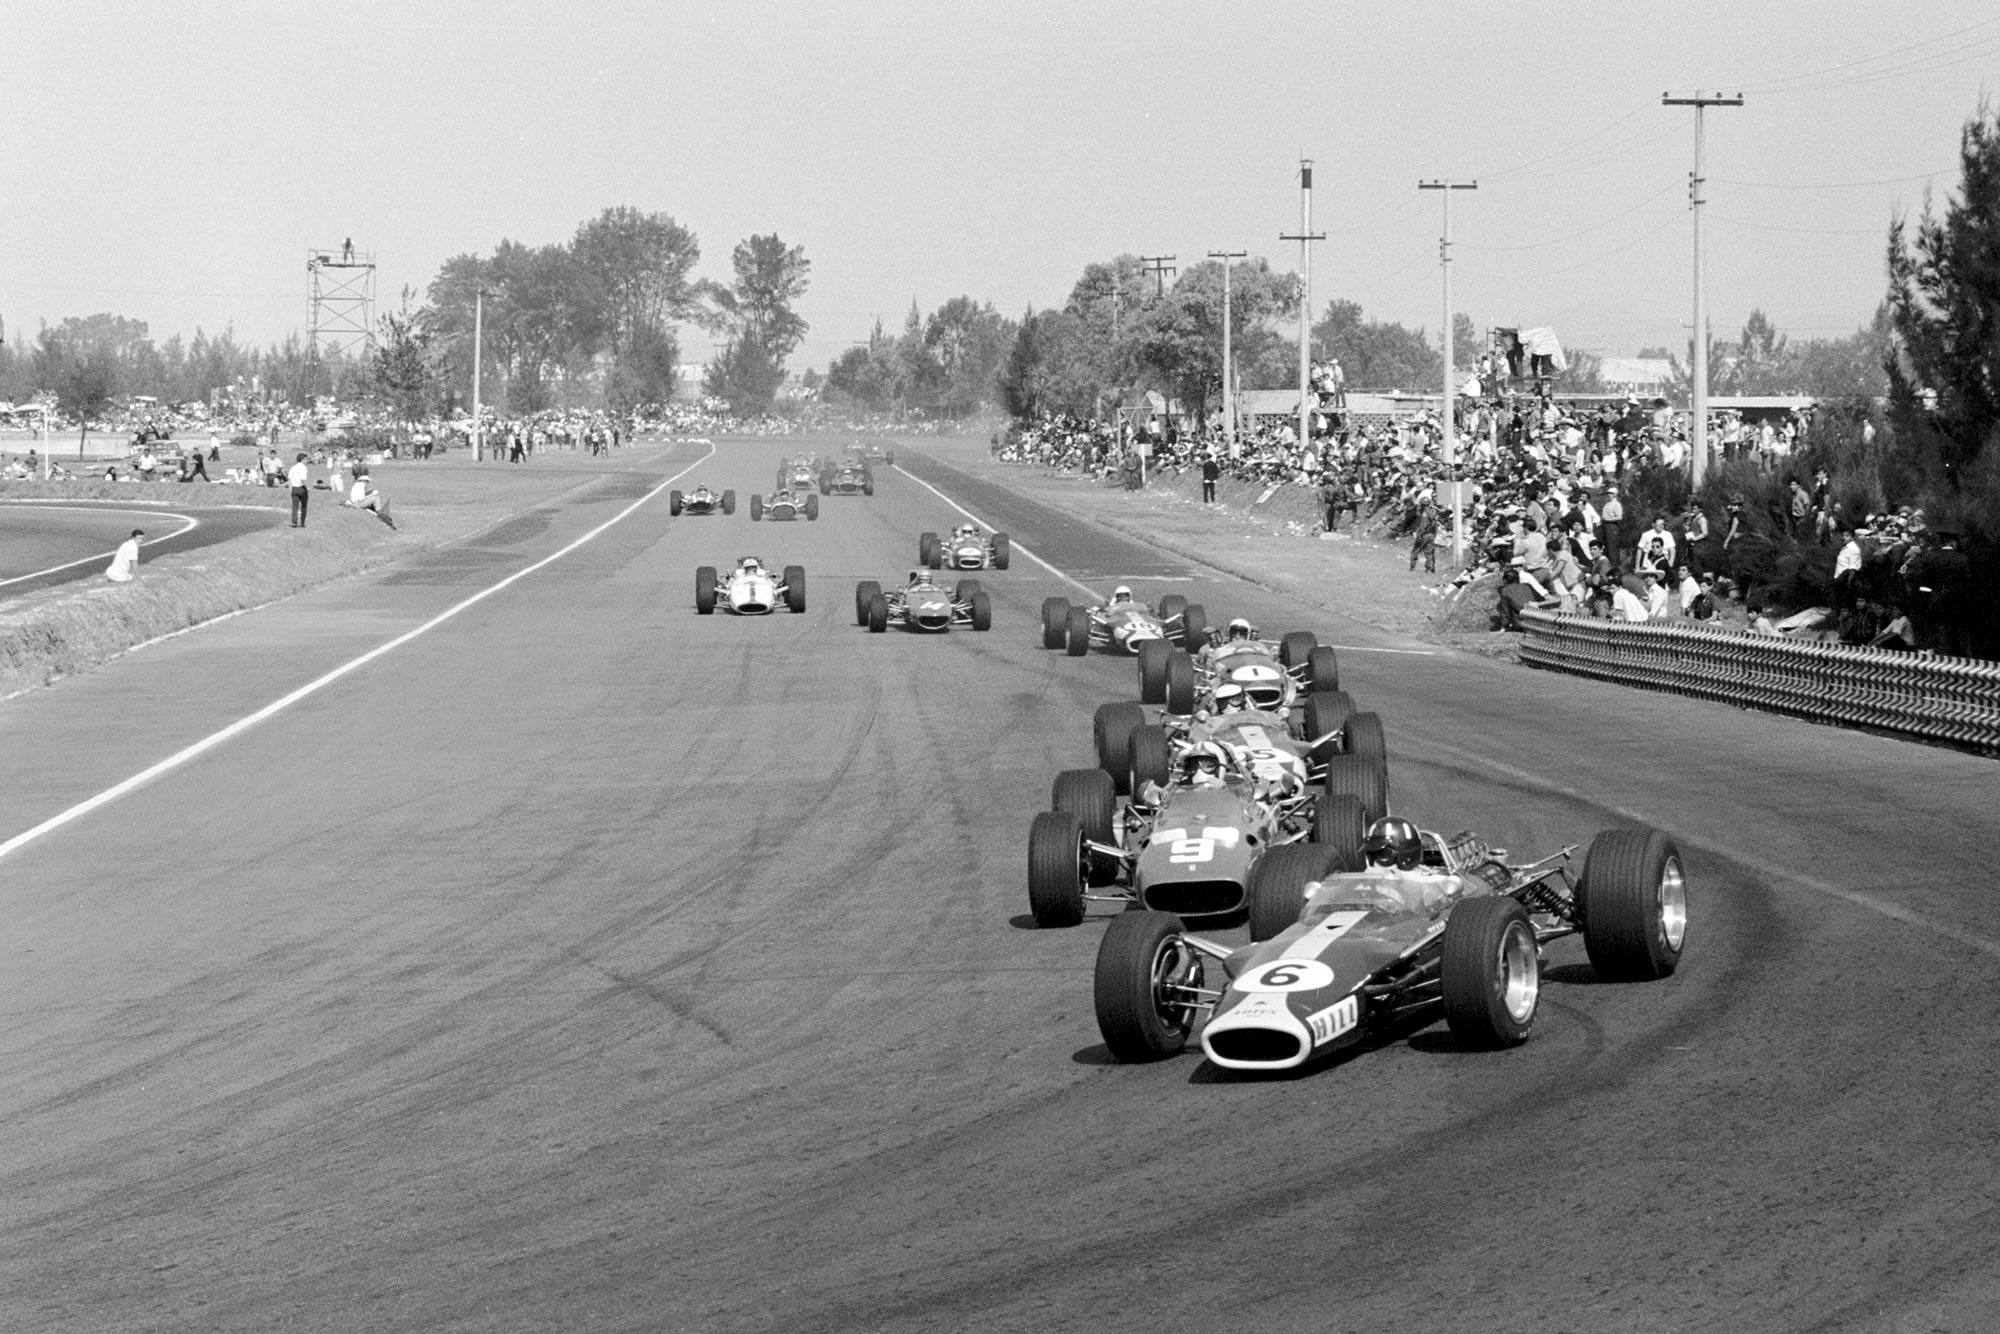 In the opening lap of the race, Graham Hill (GBR) Lotus 49 leads Chris Amon (NZL) Ferrari 312 with race winner Jim Clark (GBR) Lotus 49 in third place. Mexican Grand Prix, Mexico City, 22 October 1967.